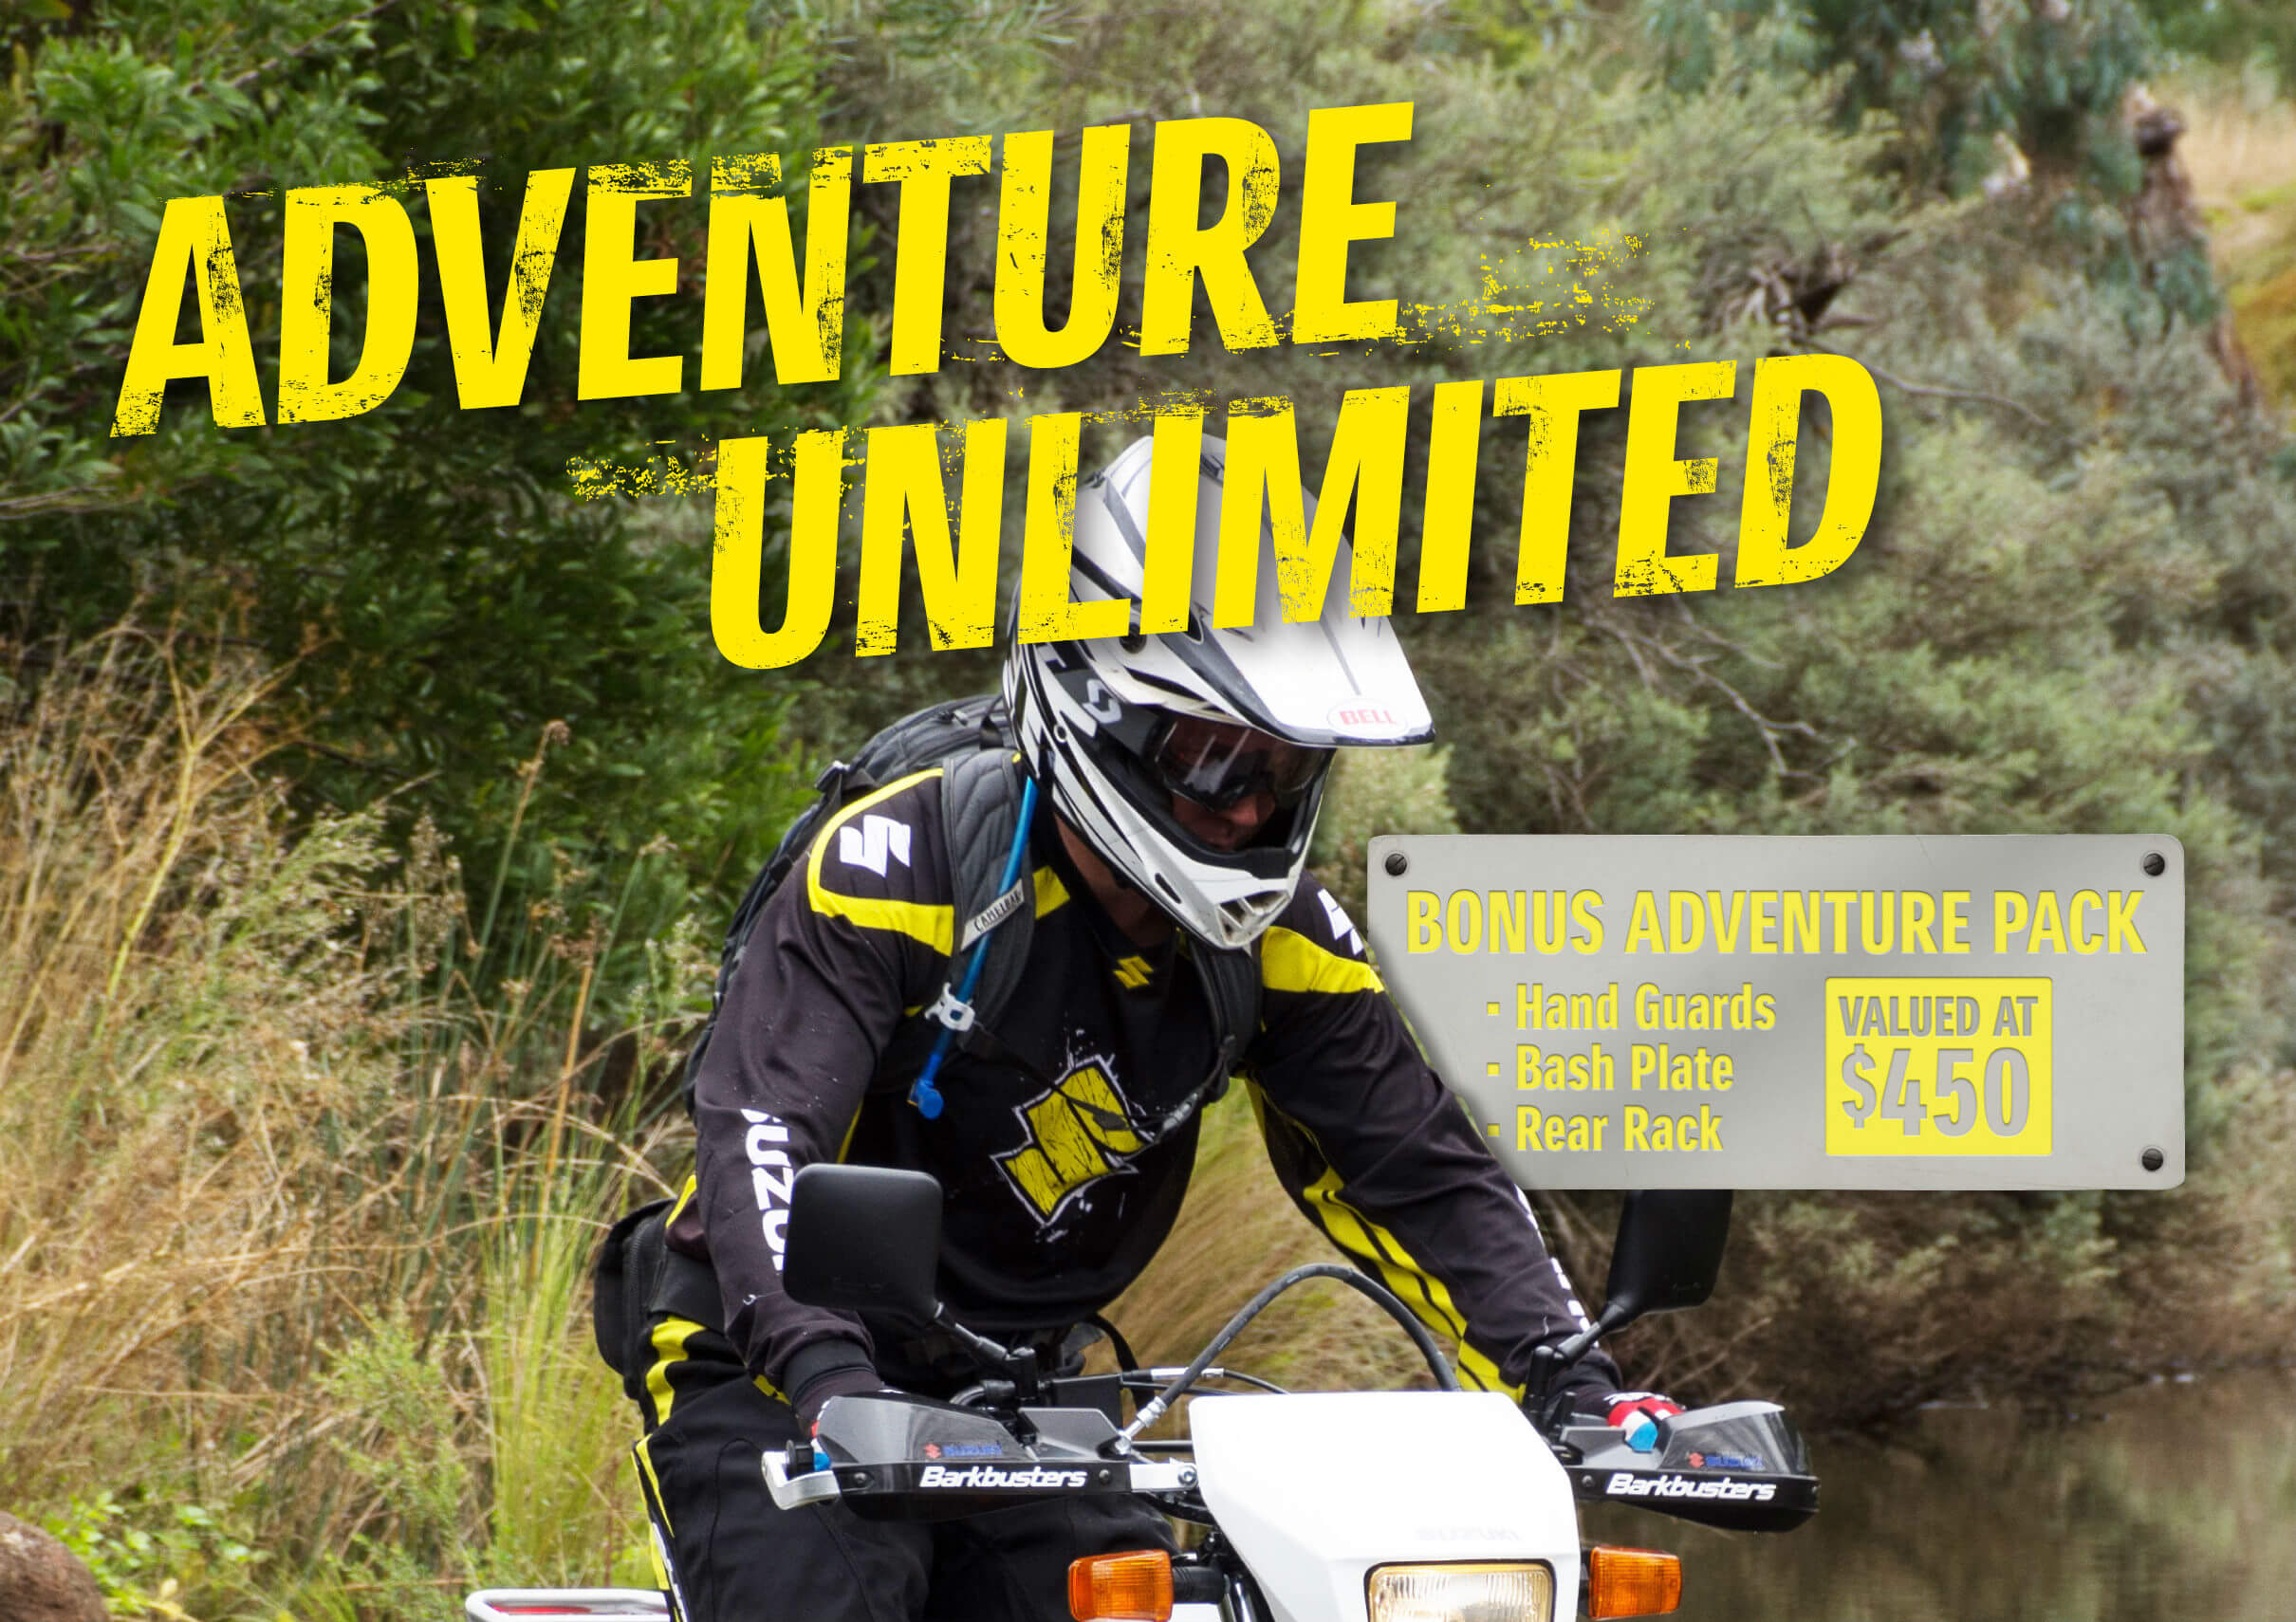 Adventure Unlimited Bonus Adventure Pack Suzuki